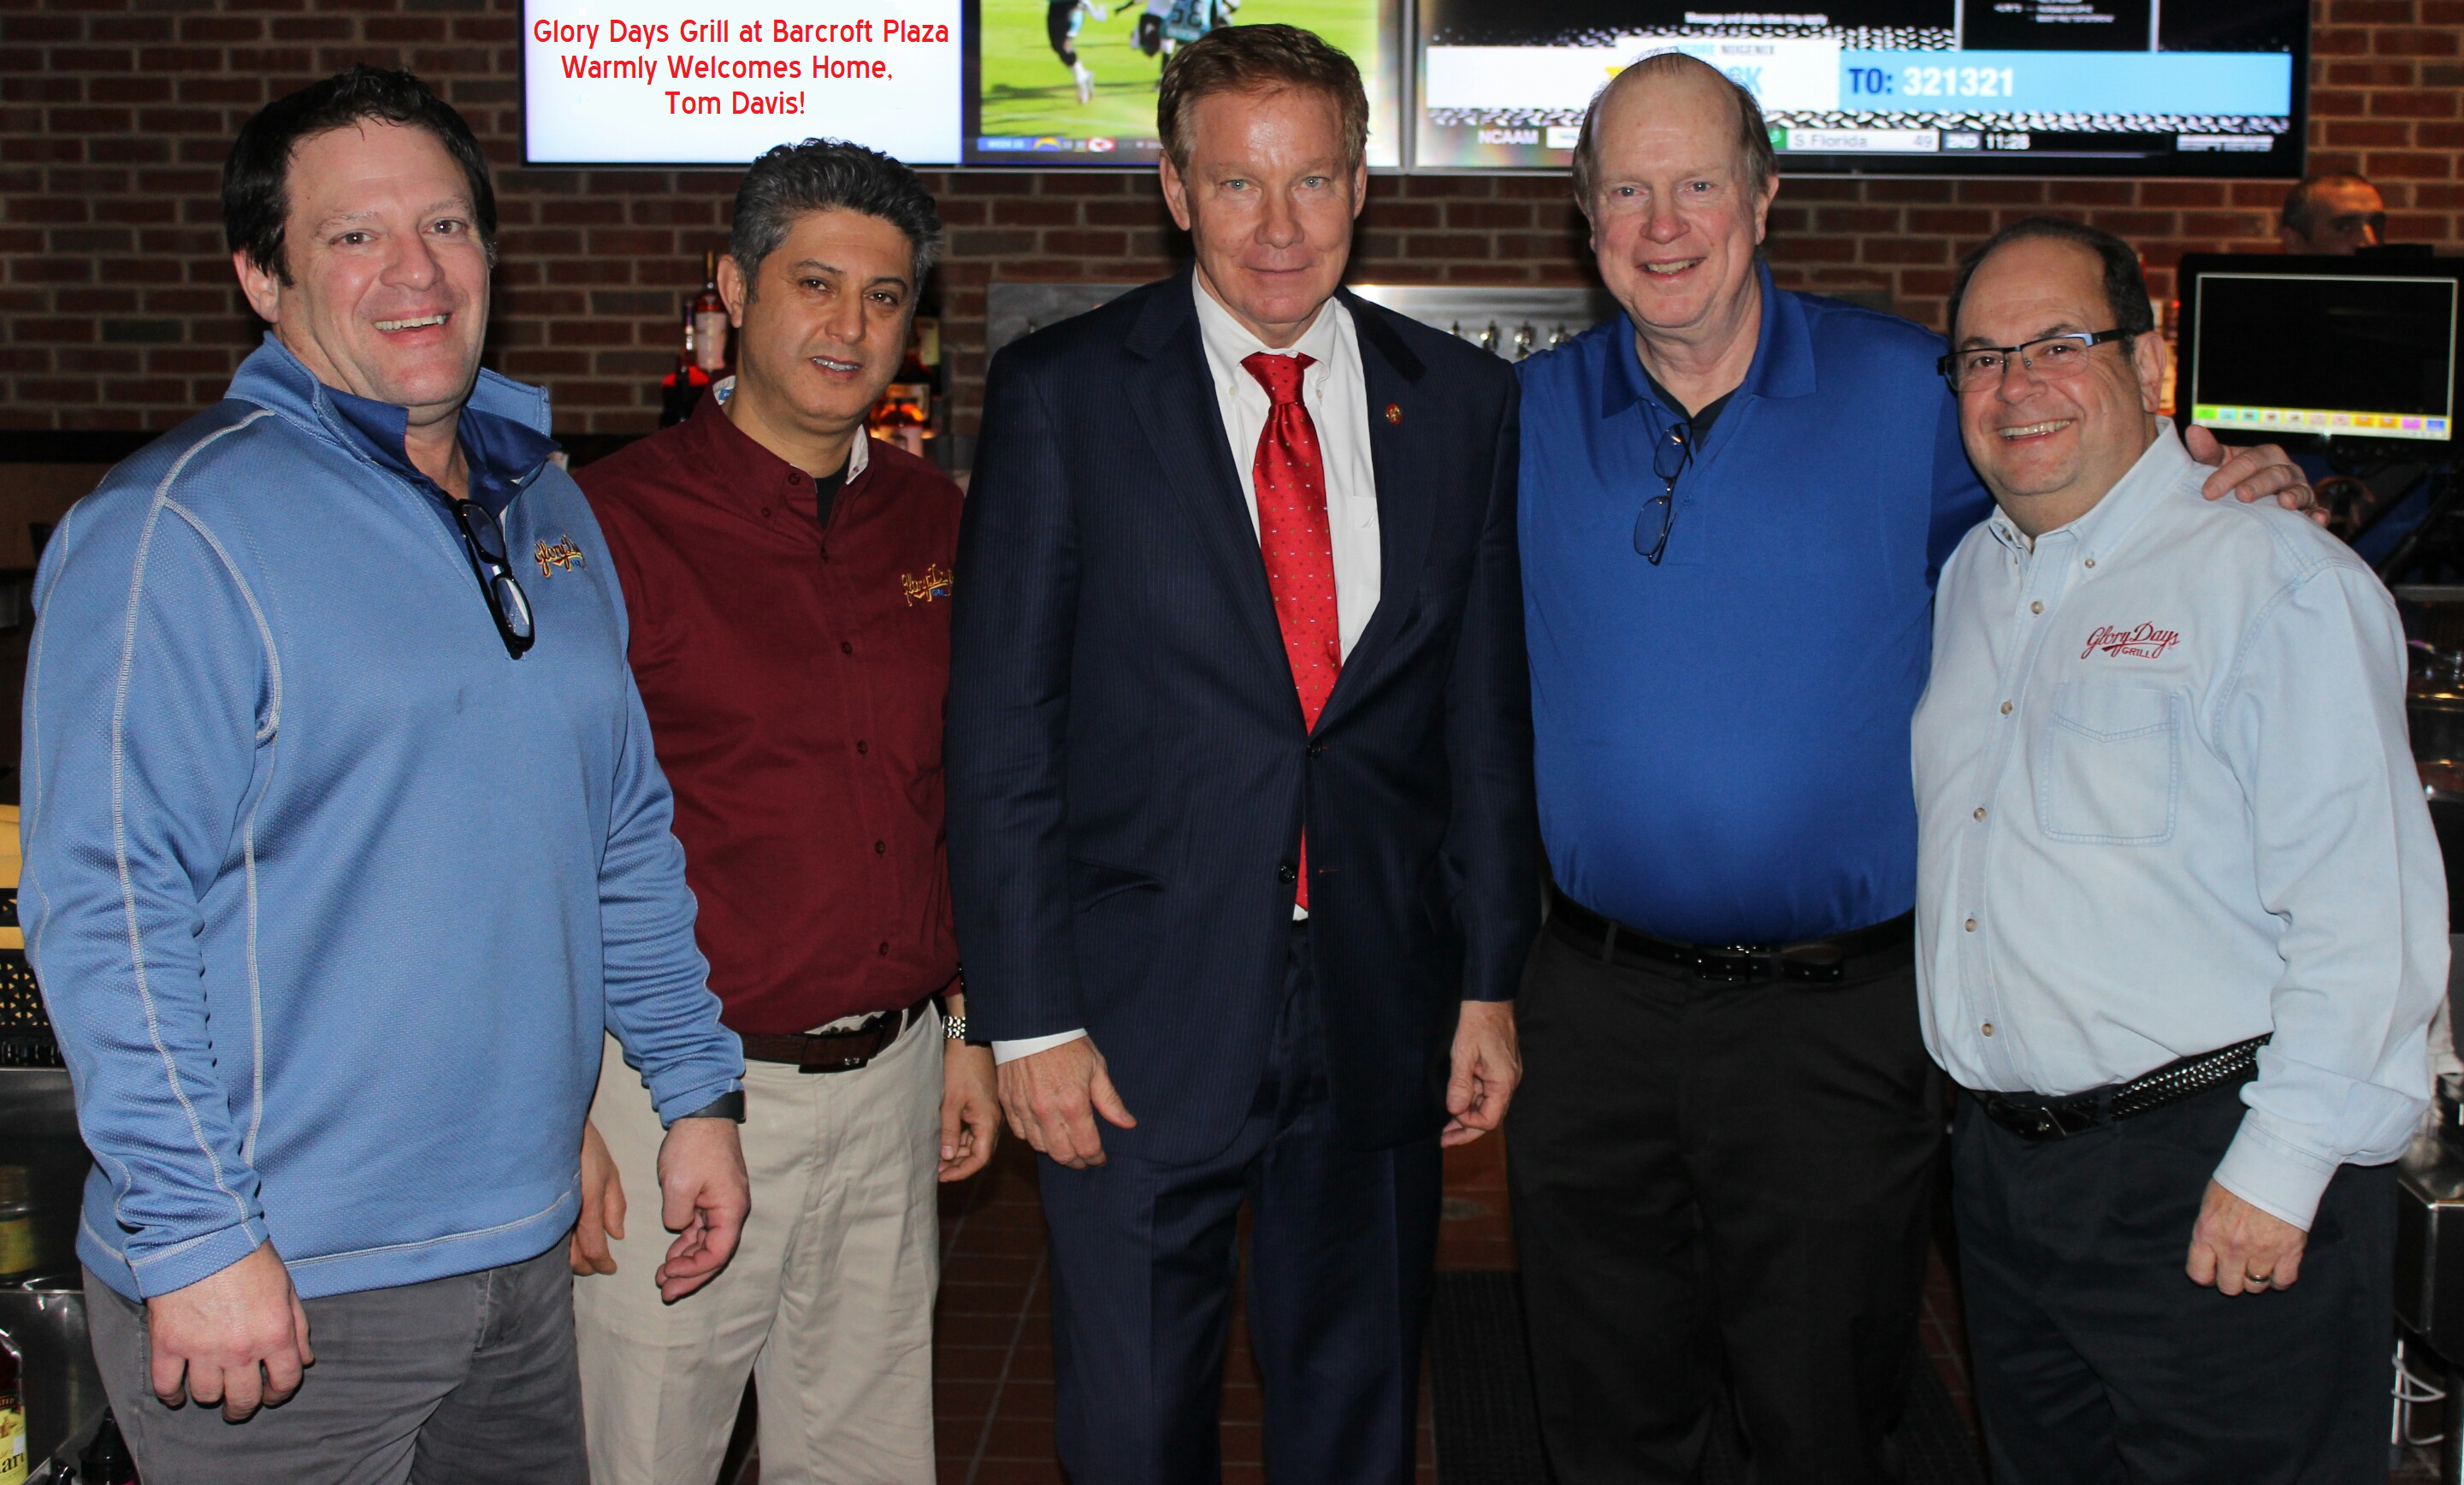 Glory-Days-Grill-at-Barcroft-Plaza-L-to-R-Lonnie-Lazear-Wali-Ghause-First-Guest-former-Congressman-Tom-Davis-VA-11-Pat-Malone-Gary-Cohen.png